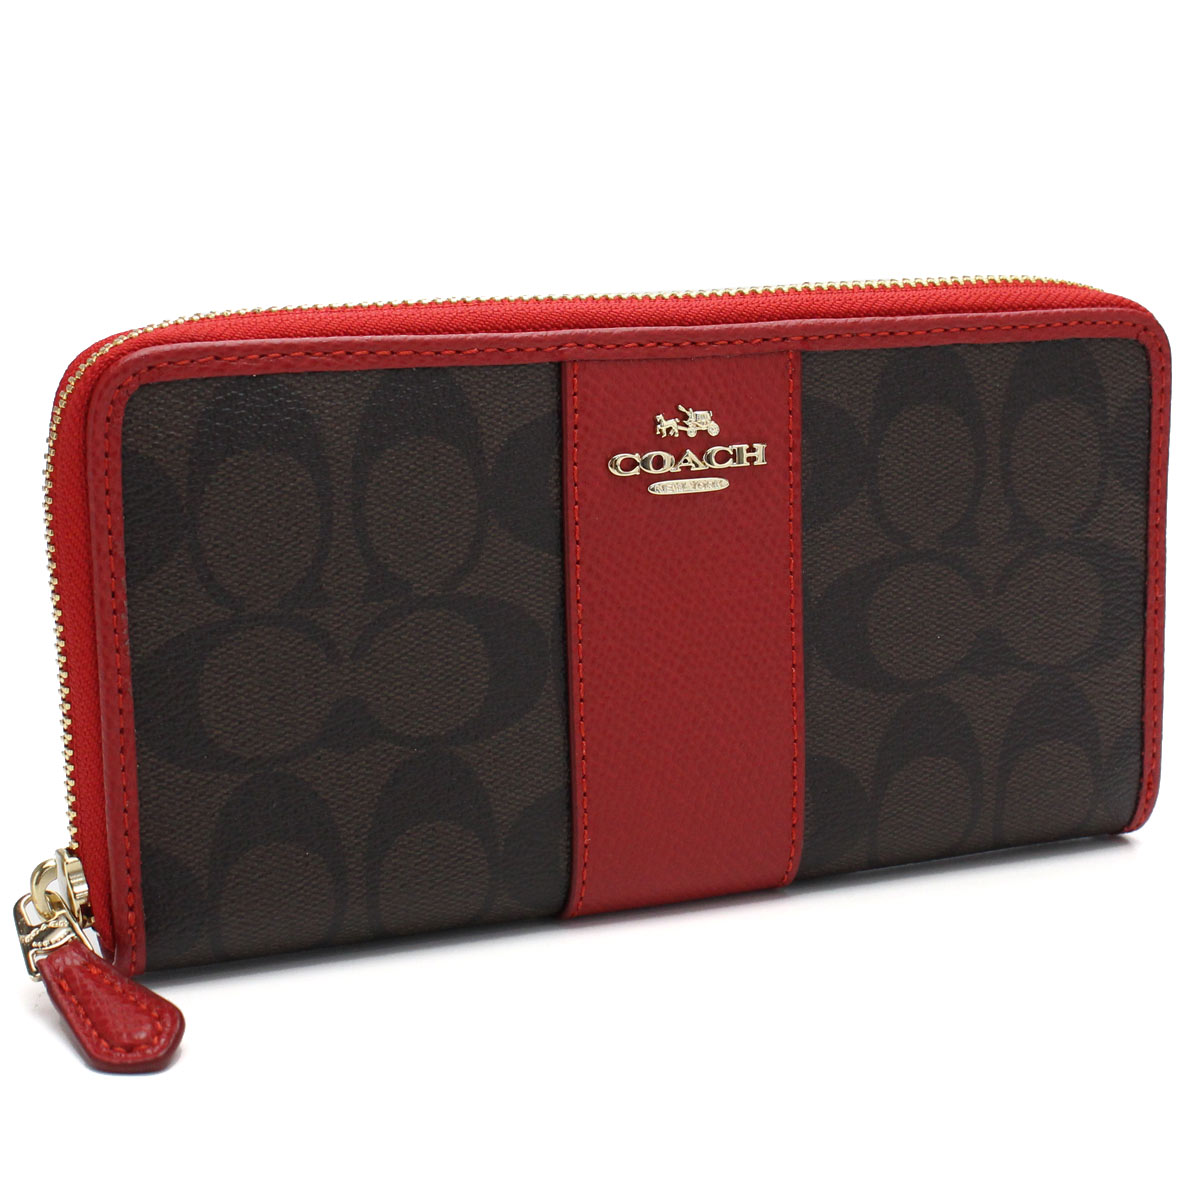 3246d23871 Bighit The total brand wholesale: Coach COACH wallet signature round  fastener long wallet F54630 IML72 red system brown system | Rakuten Global  Market